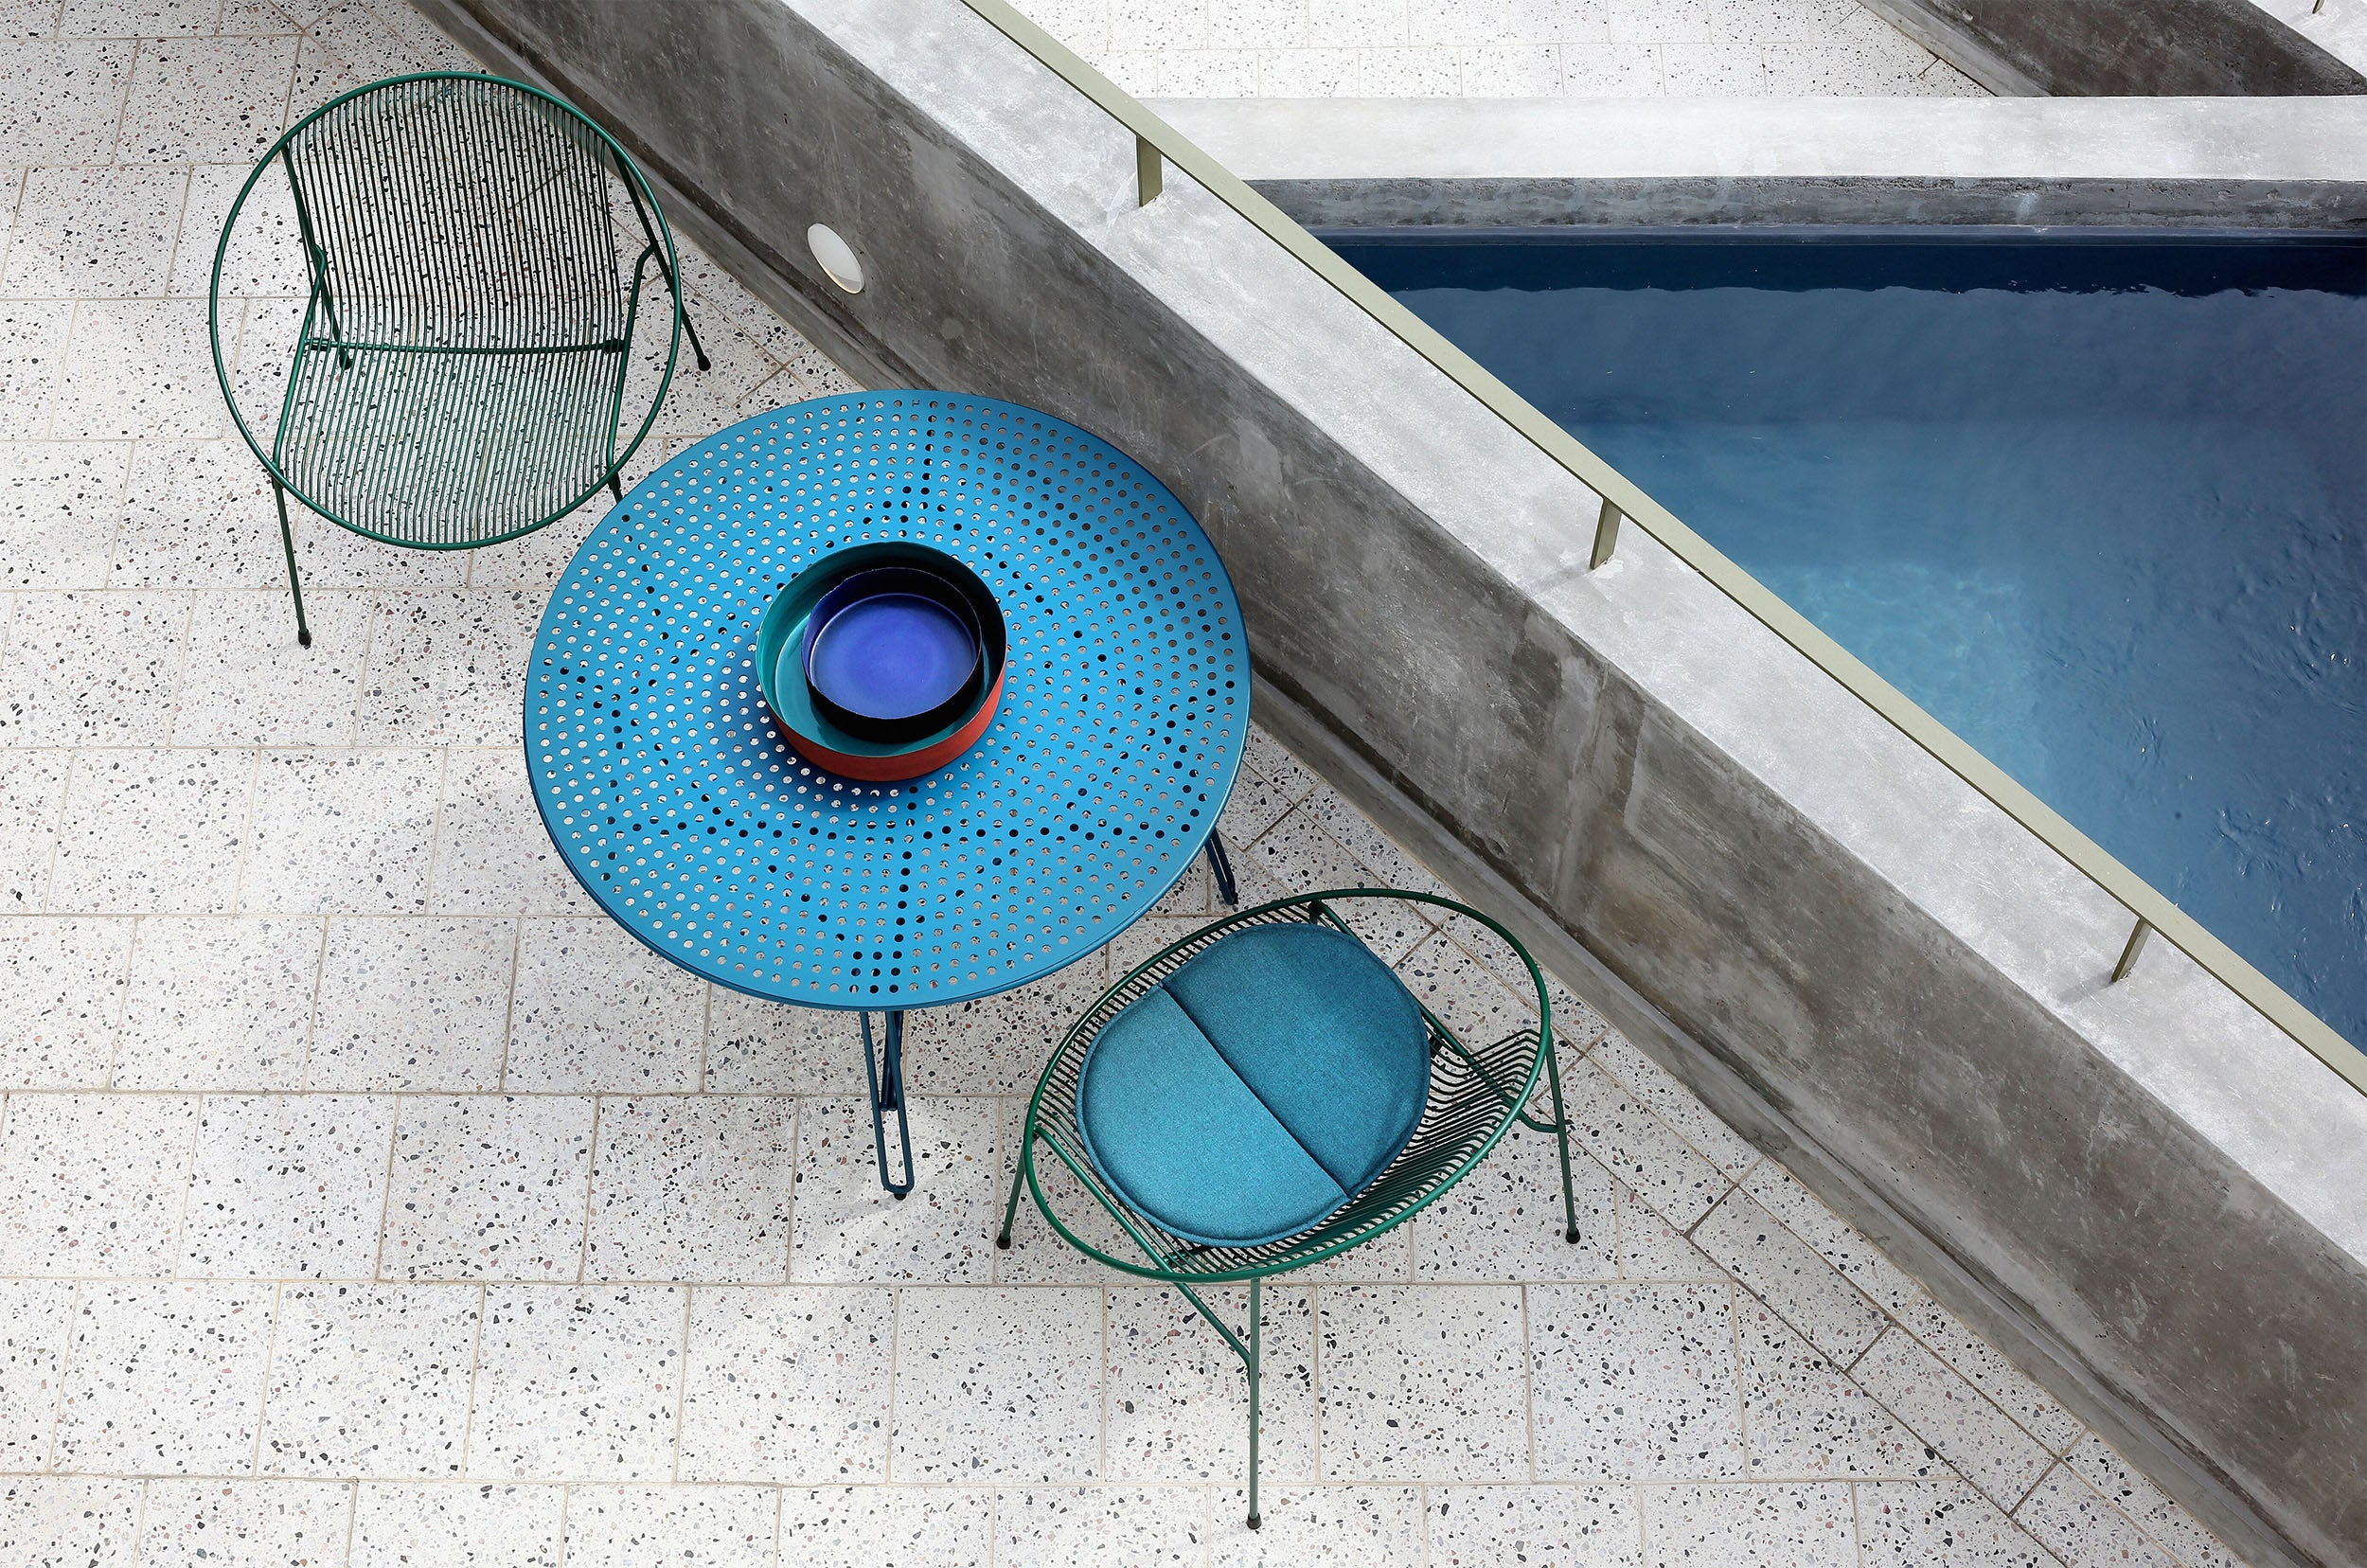 Haldane Martin, outdoor furniture, blue outdoor tables and chairs styled in an outdoor setting.  Haldane Martin outdoor furniture is available at Sarza home goods and furniture store in Rye New York.